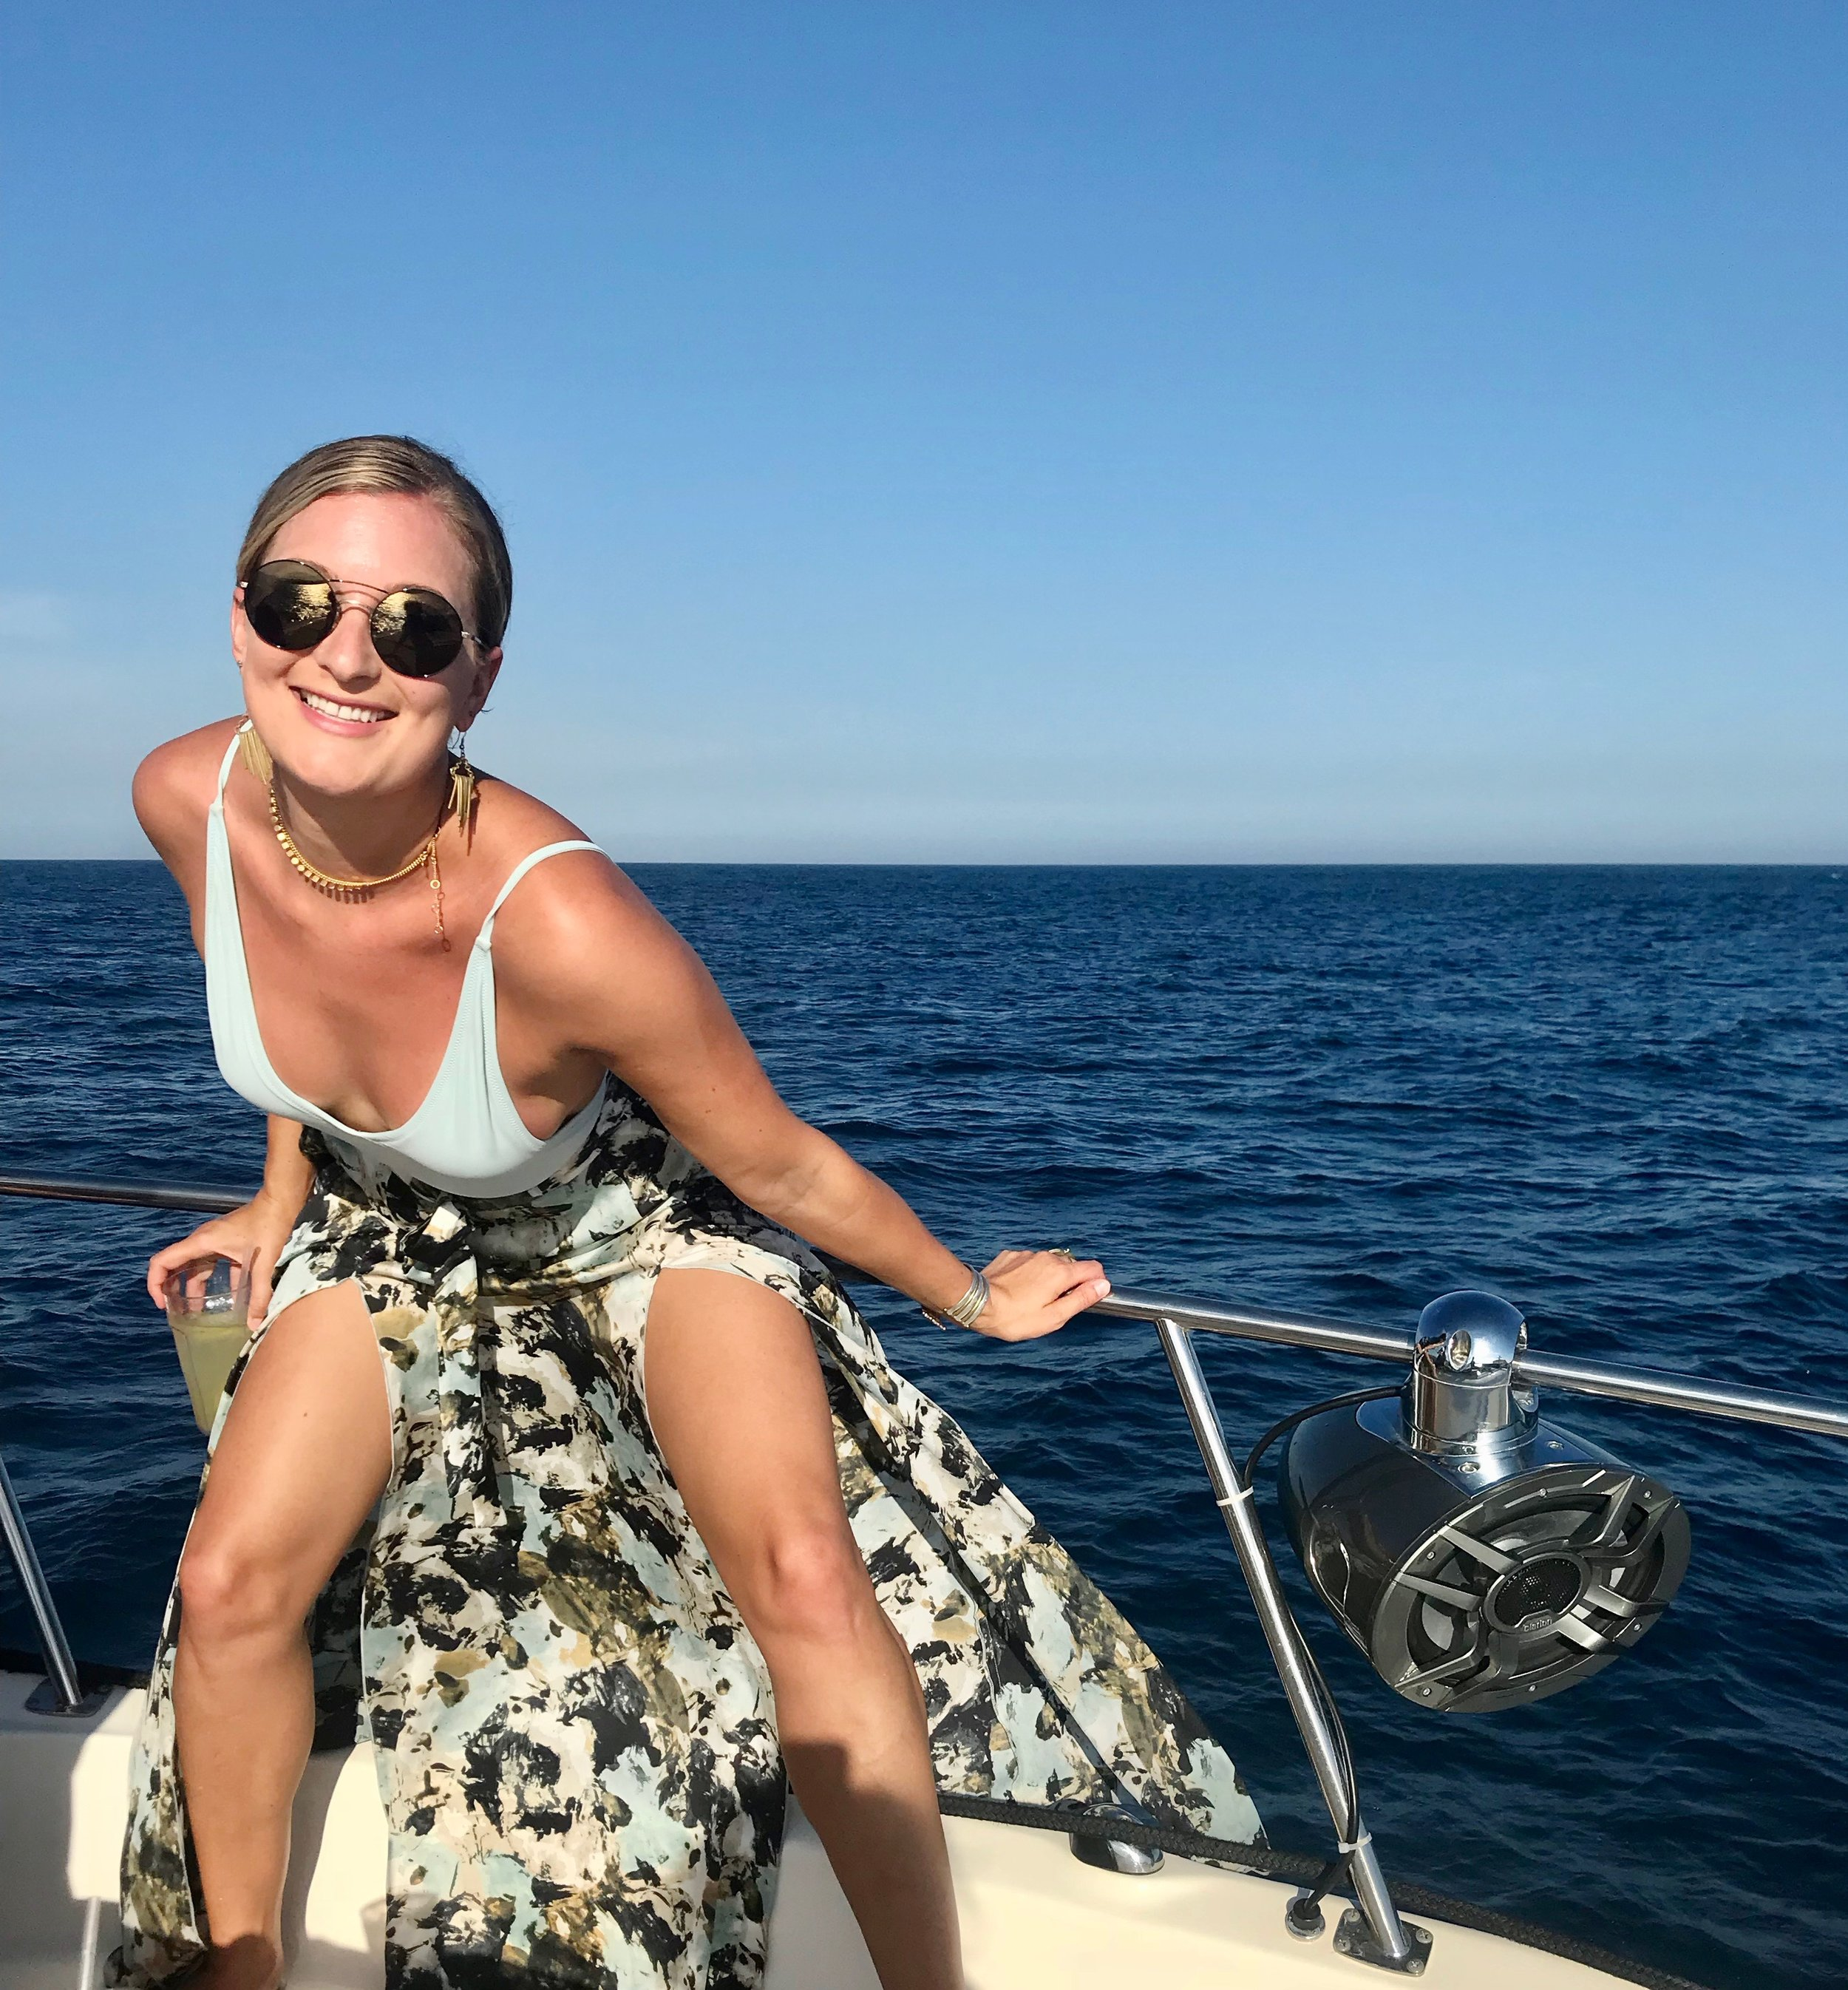 Cabo San Lucas, Mexico.  No, my days are not all traced in cloud-light with sunfish licking at the yachts hull, but this smile has stayed with me. Because chasing what you love brings a sustained bliss that far outlasts a temporary vaca.